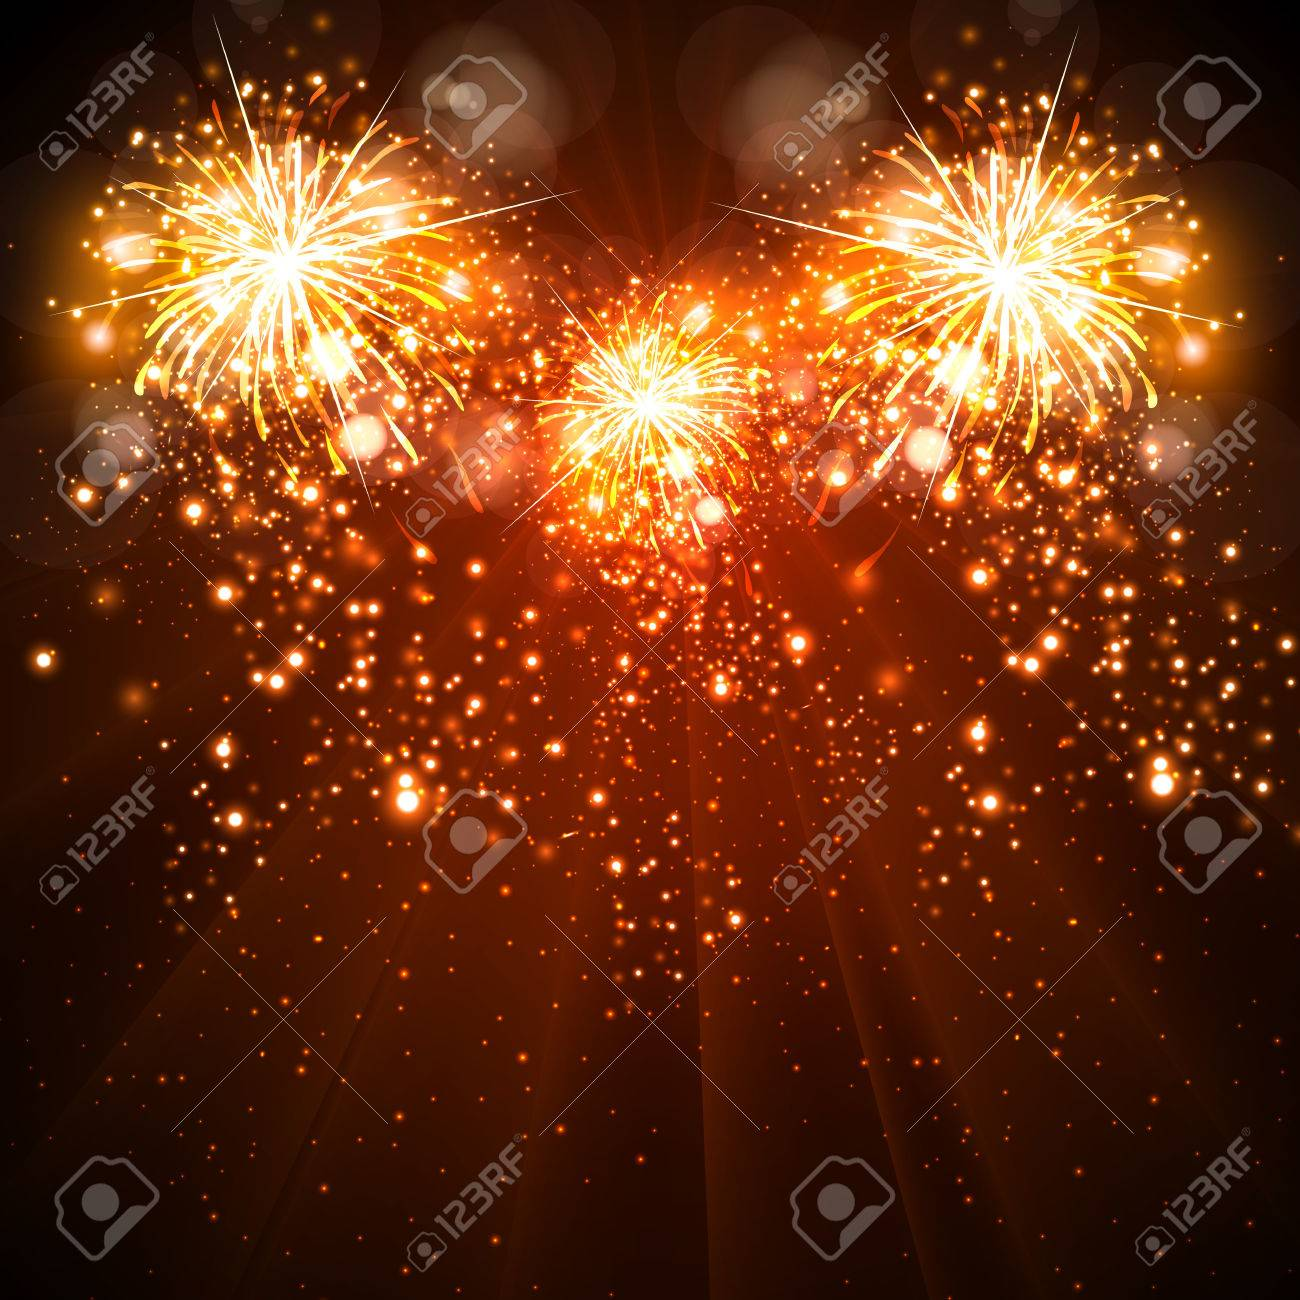 happy new year celebration background fireworks easy all editable stock vector 34159313